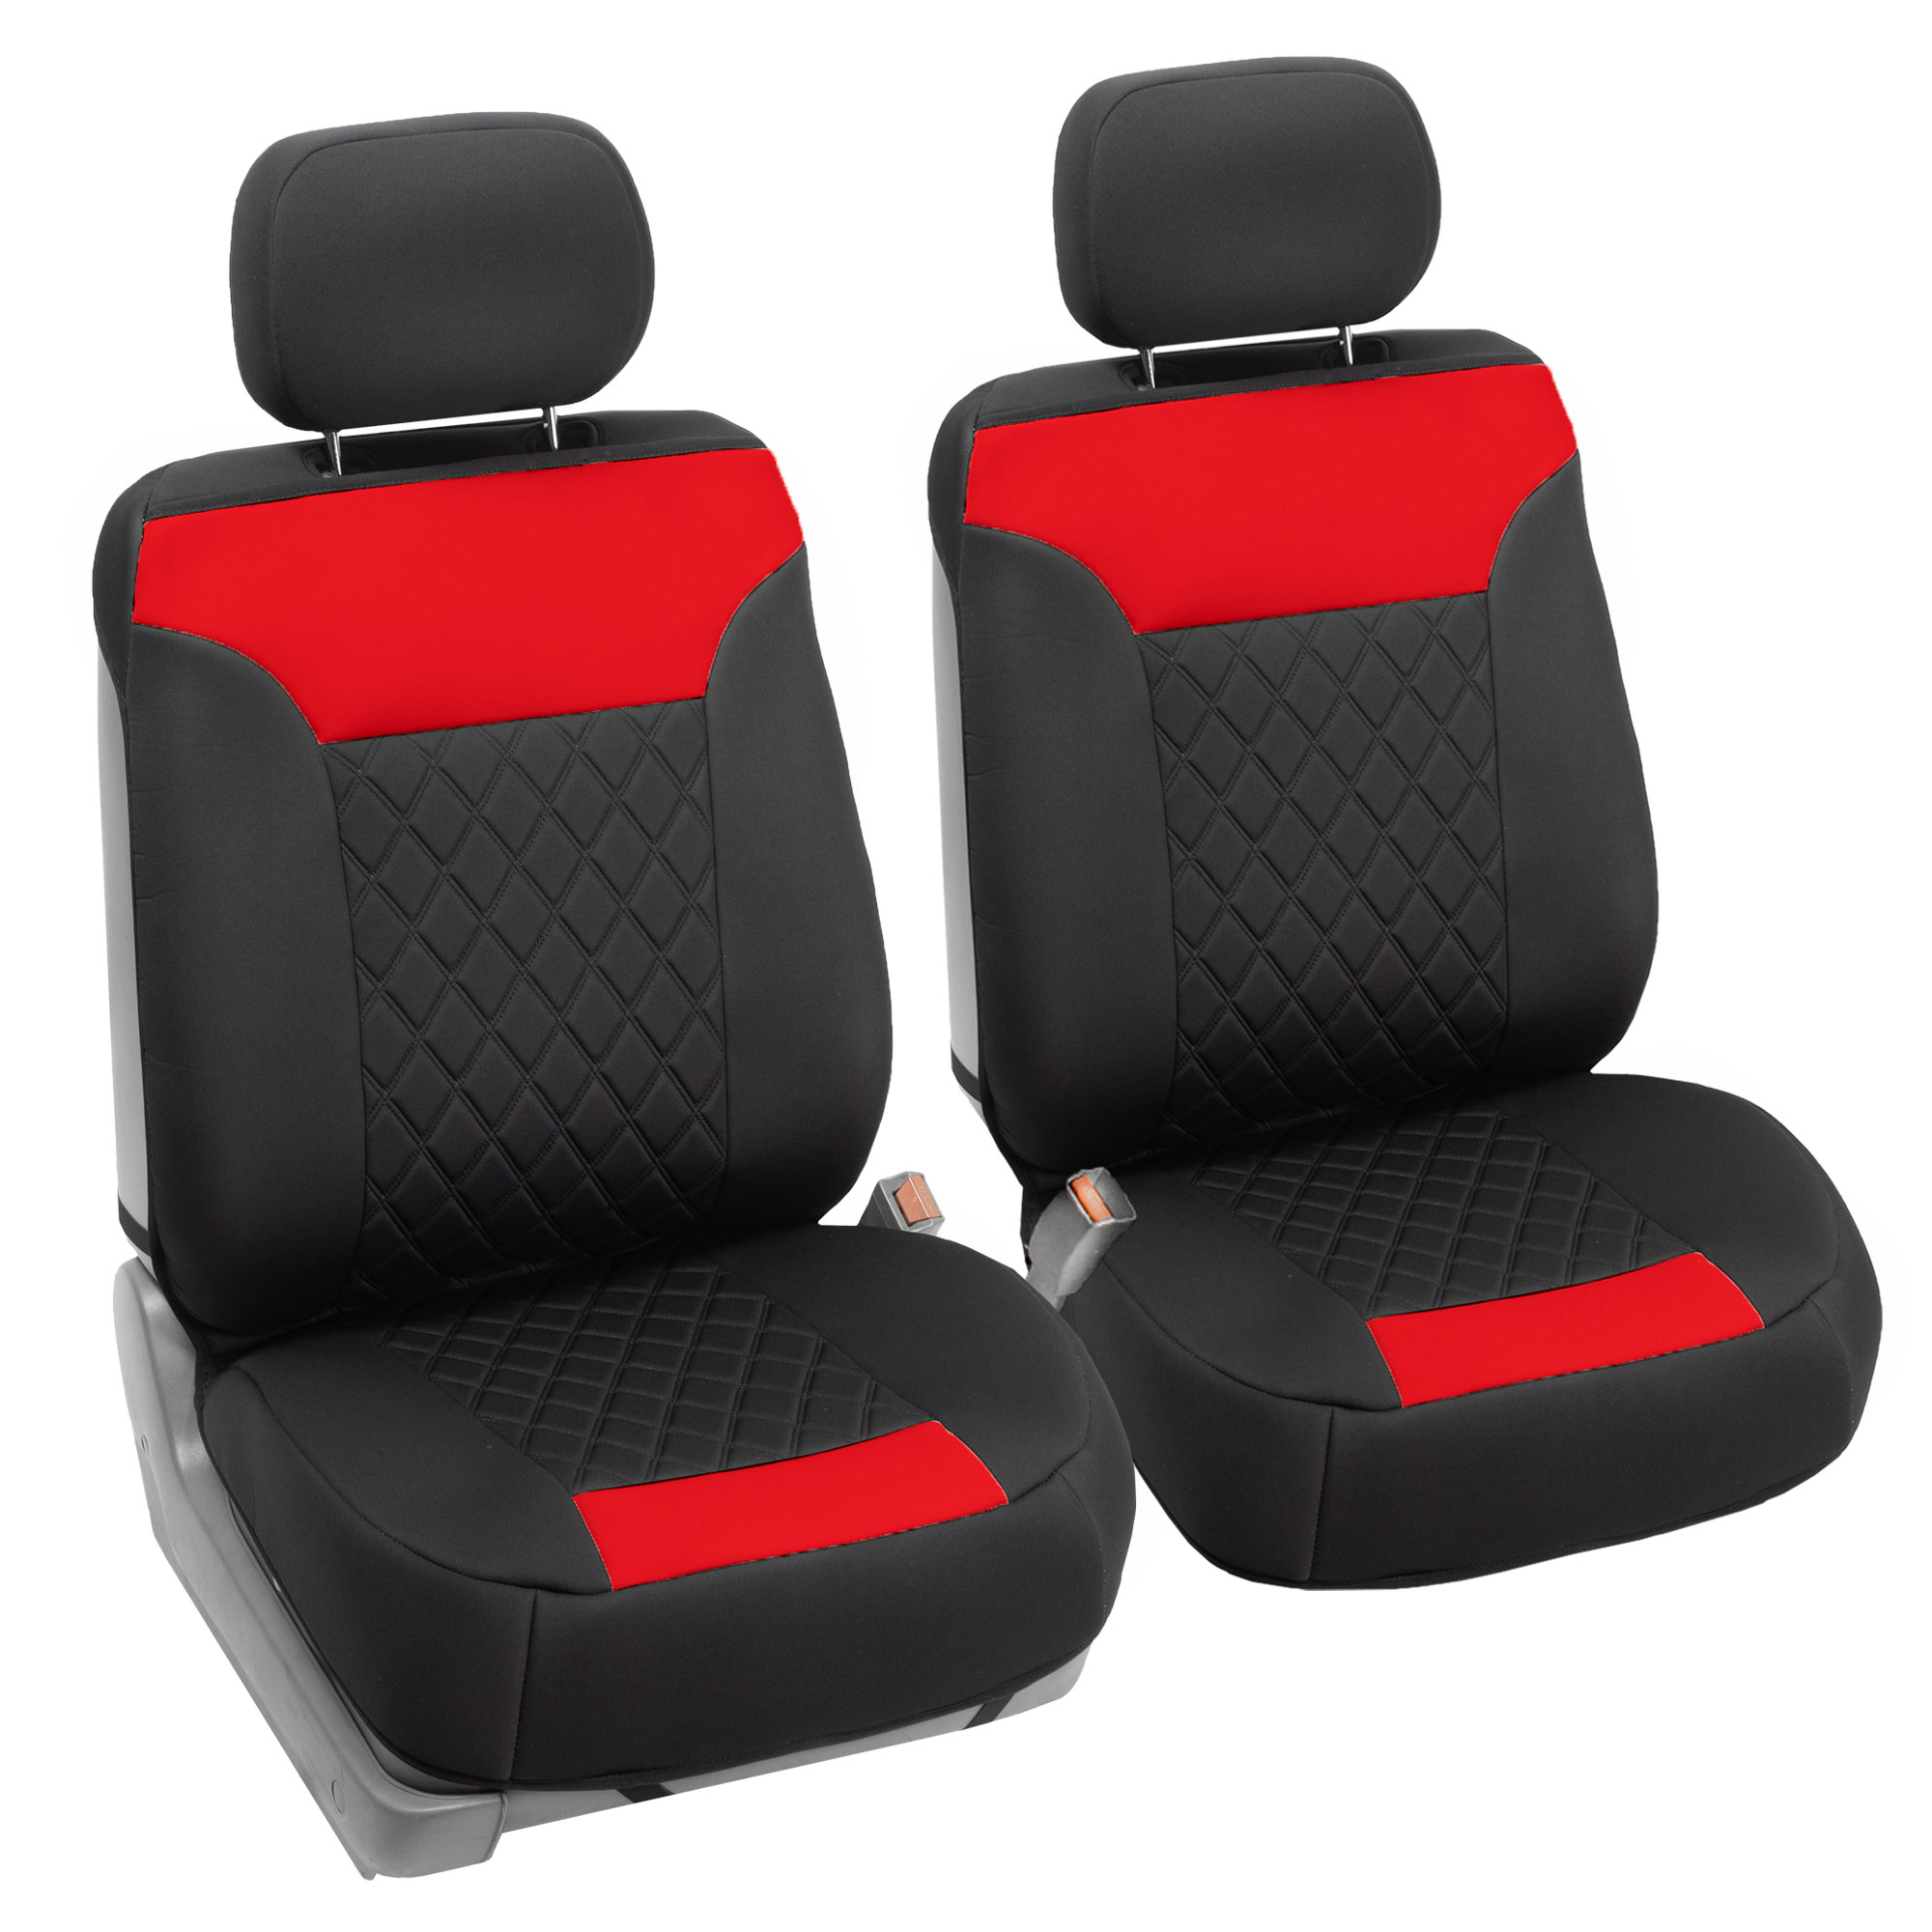 Neosupreme Quality Car Seat Cushions - Front FB089red102 01